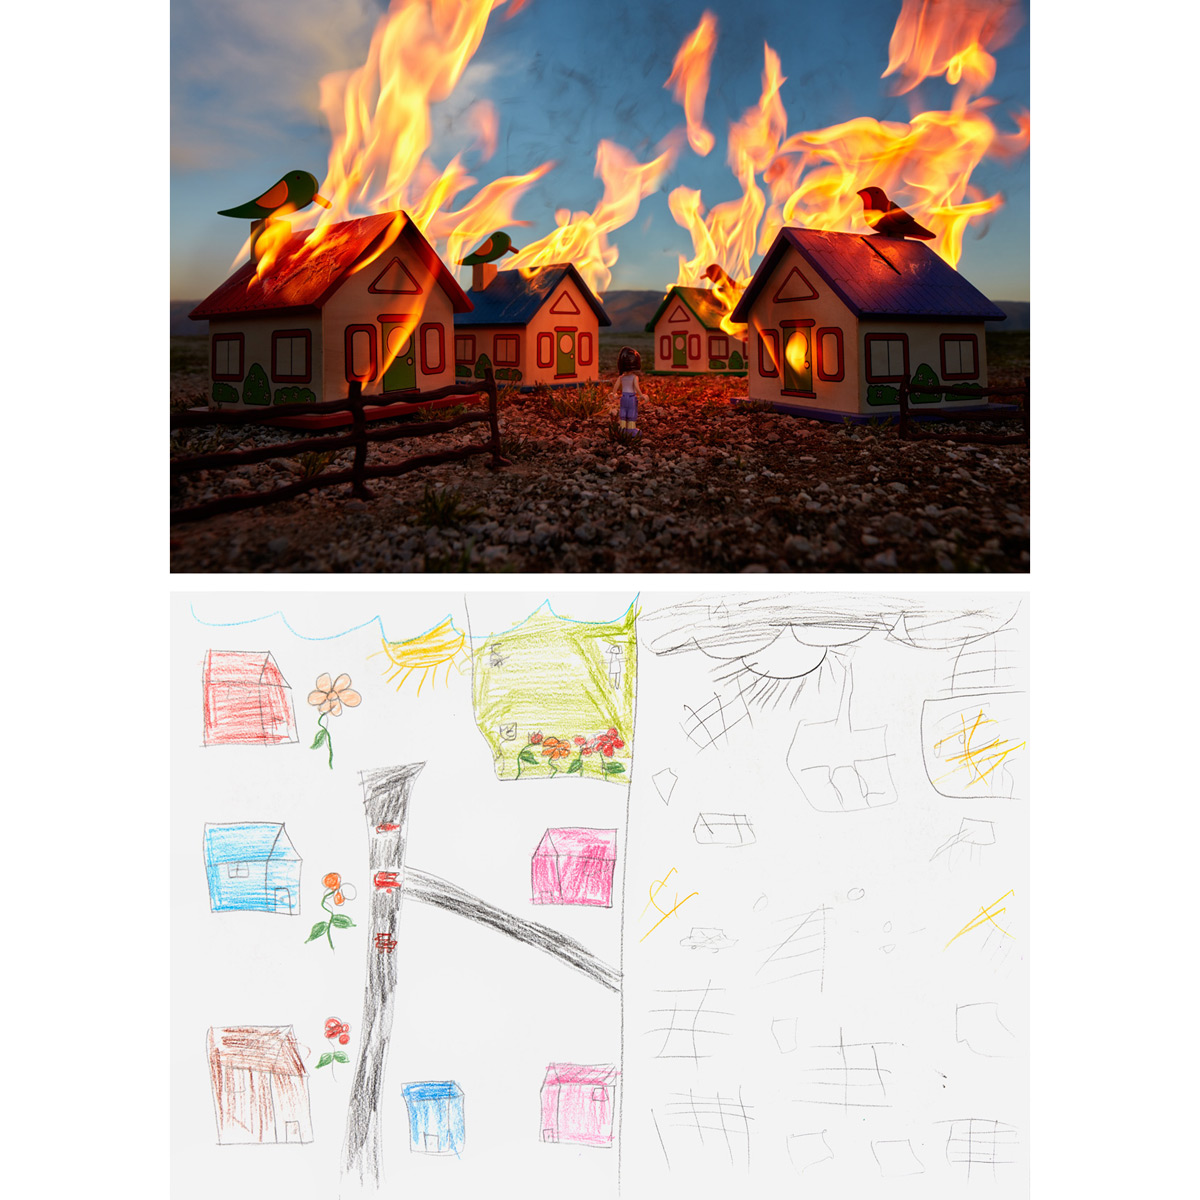 "Burning Neighborhood - Bekaa Valley, Lebanon2016At the Kayany Foundation's Malala Yousafzai School for Syrian Refugee Girls in Lebanon, ""Alya"" drew a before-and-after scene of her neighborhood in Aleppo. She talked about how peaceful and beautiful it was before burning and being destroyed by the war. The little music-box houses were found at a shop nearby, sold cheaply because the songs they played were so distorted. They were photographed with other local toys near Alya's refugee camp along the Lebanon-Syria border."